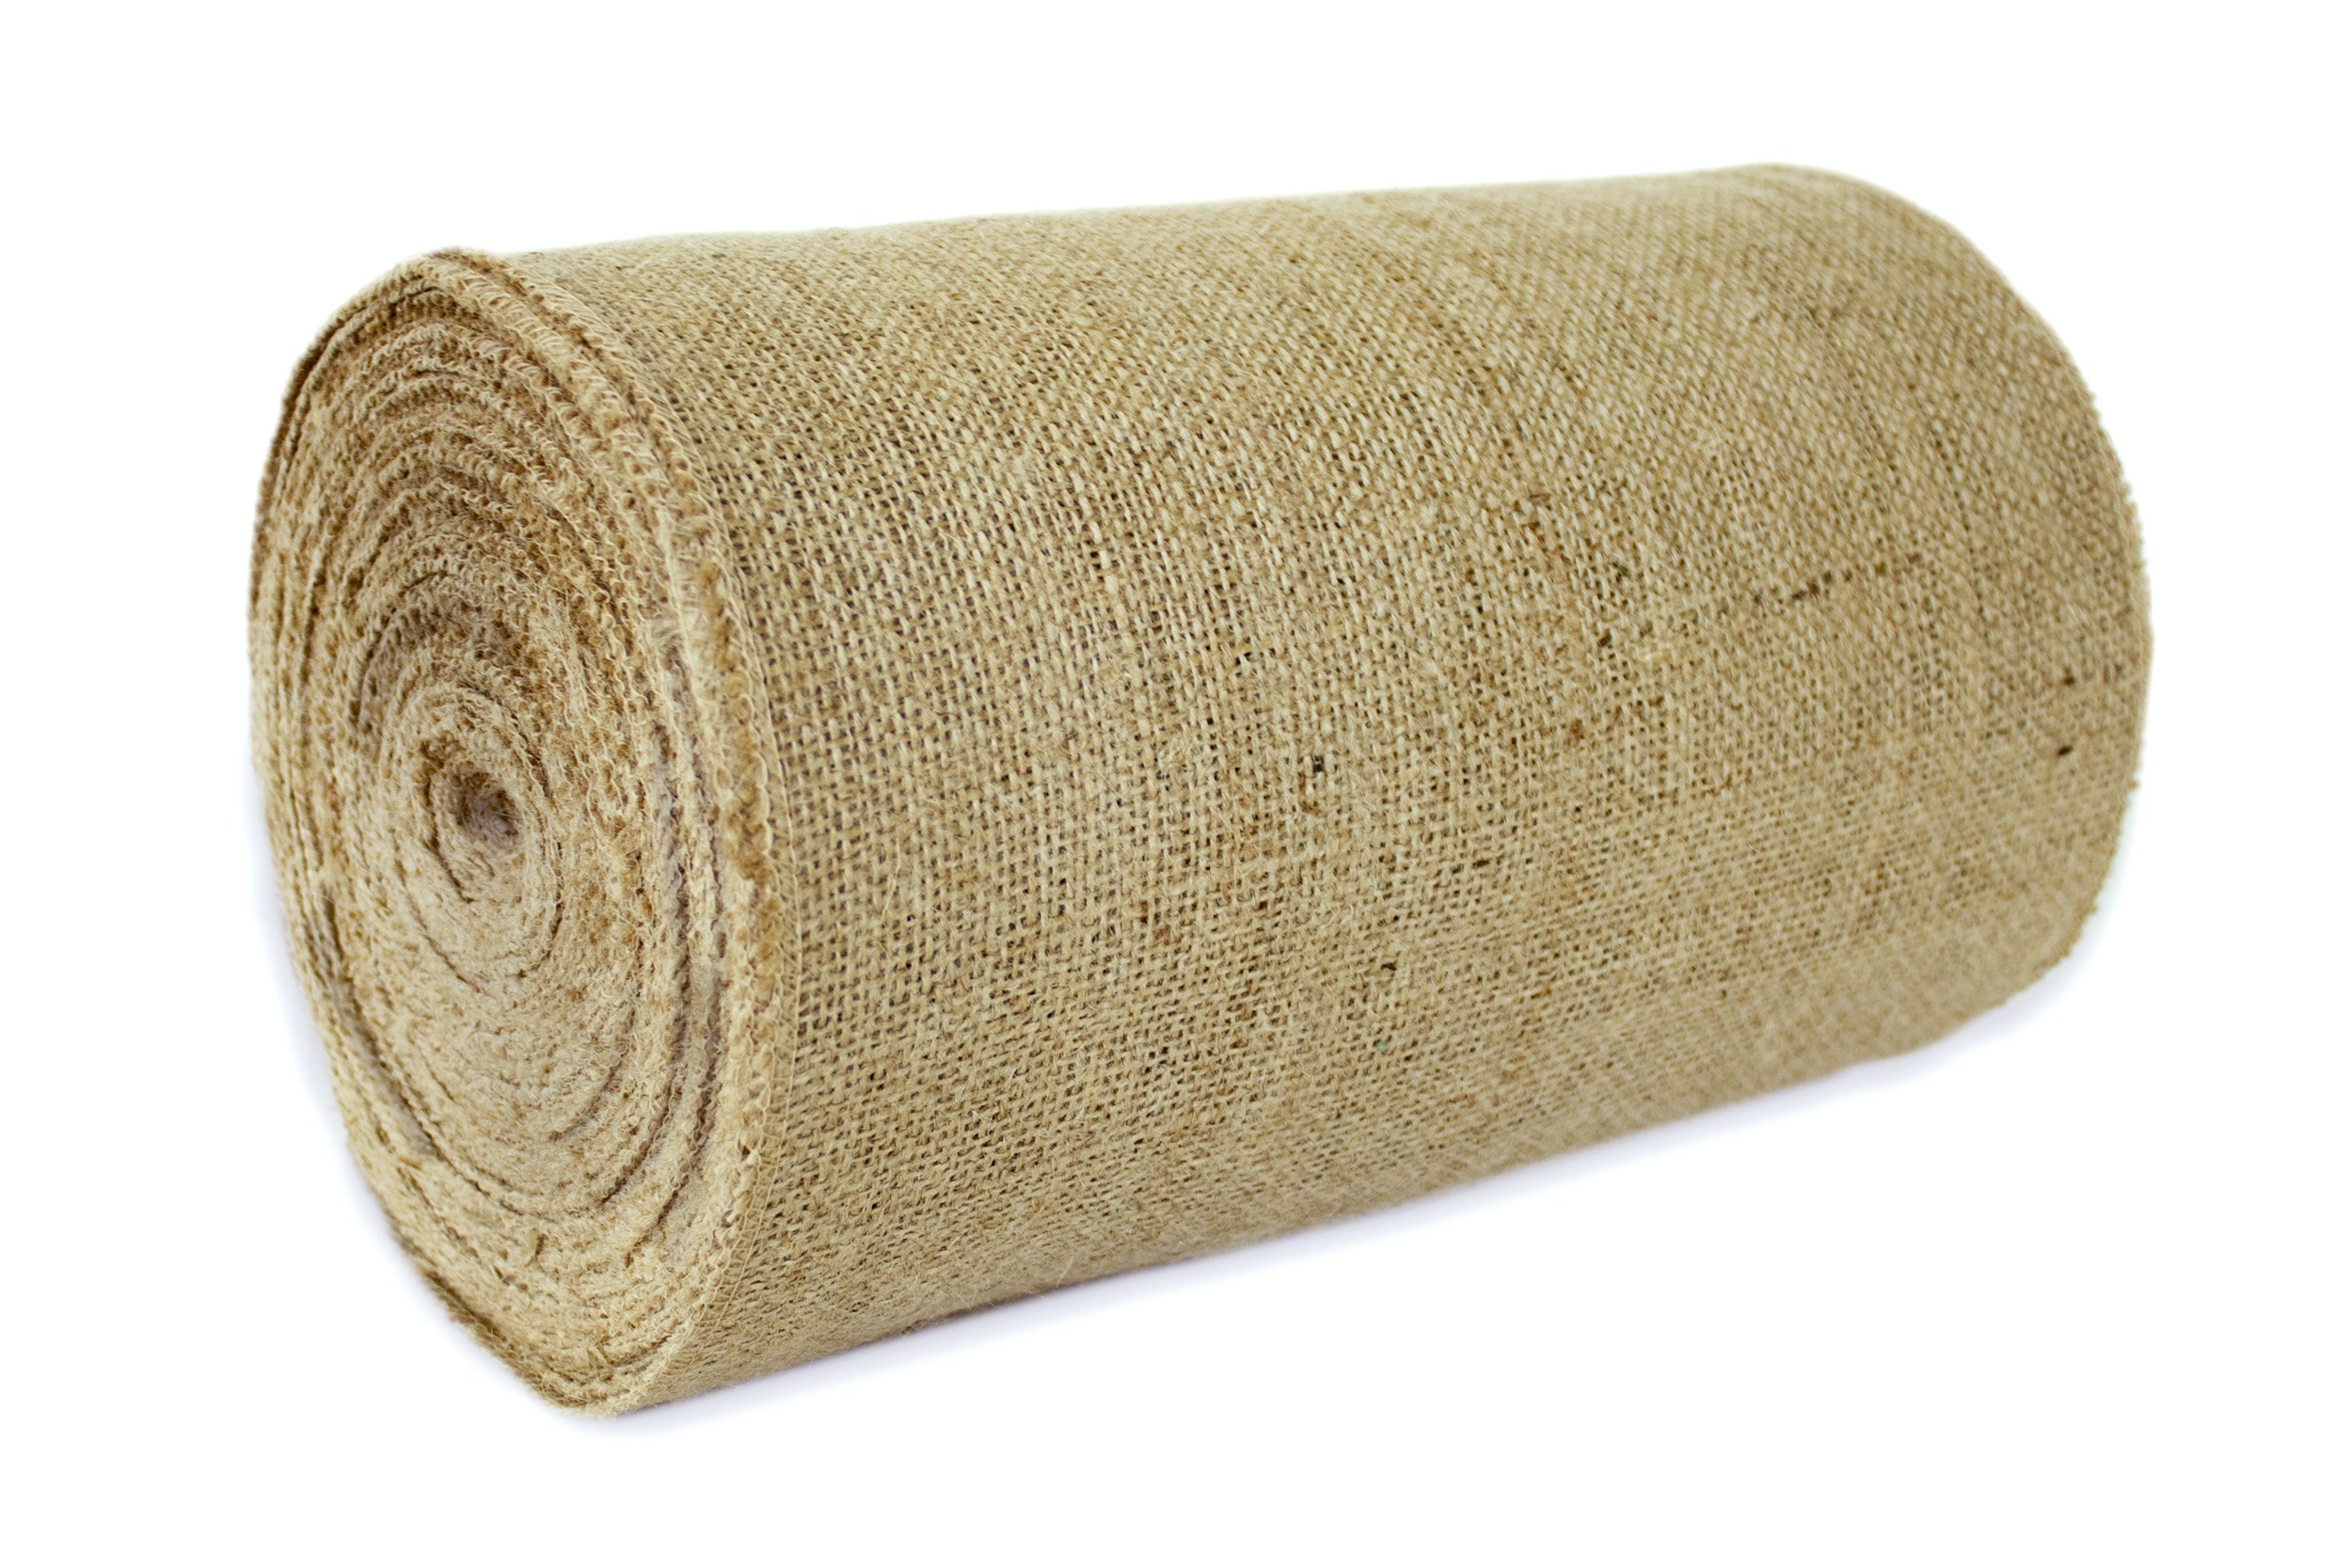 14'' No-Fray Burlap Roll Table Runner, 14 inches by 50 Yards, Placemat, Craft Fabric by Burlap and Beyond LLC (Image #4)